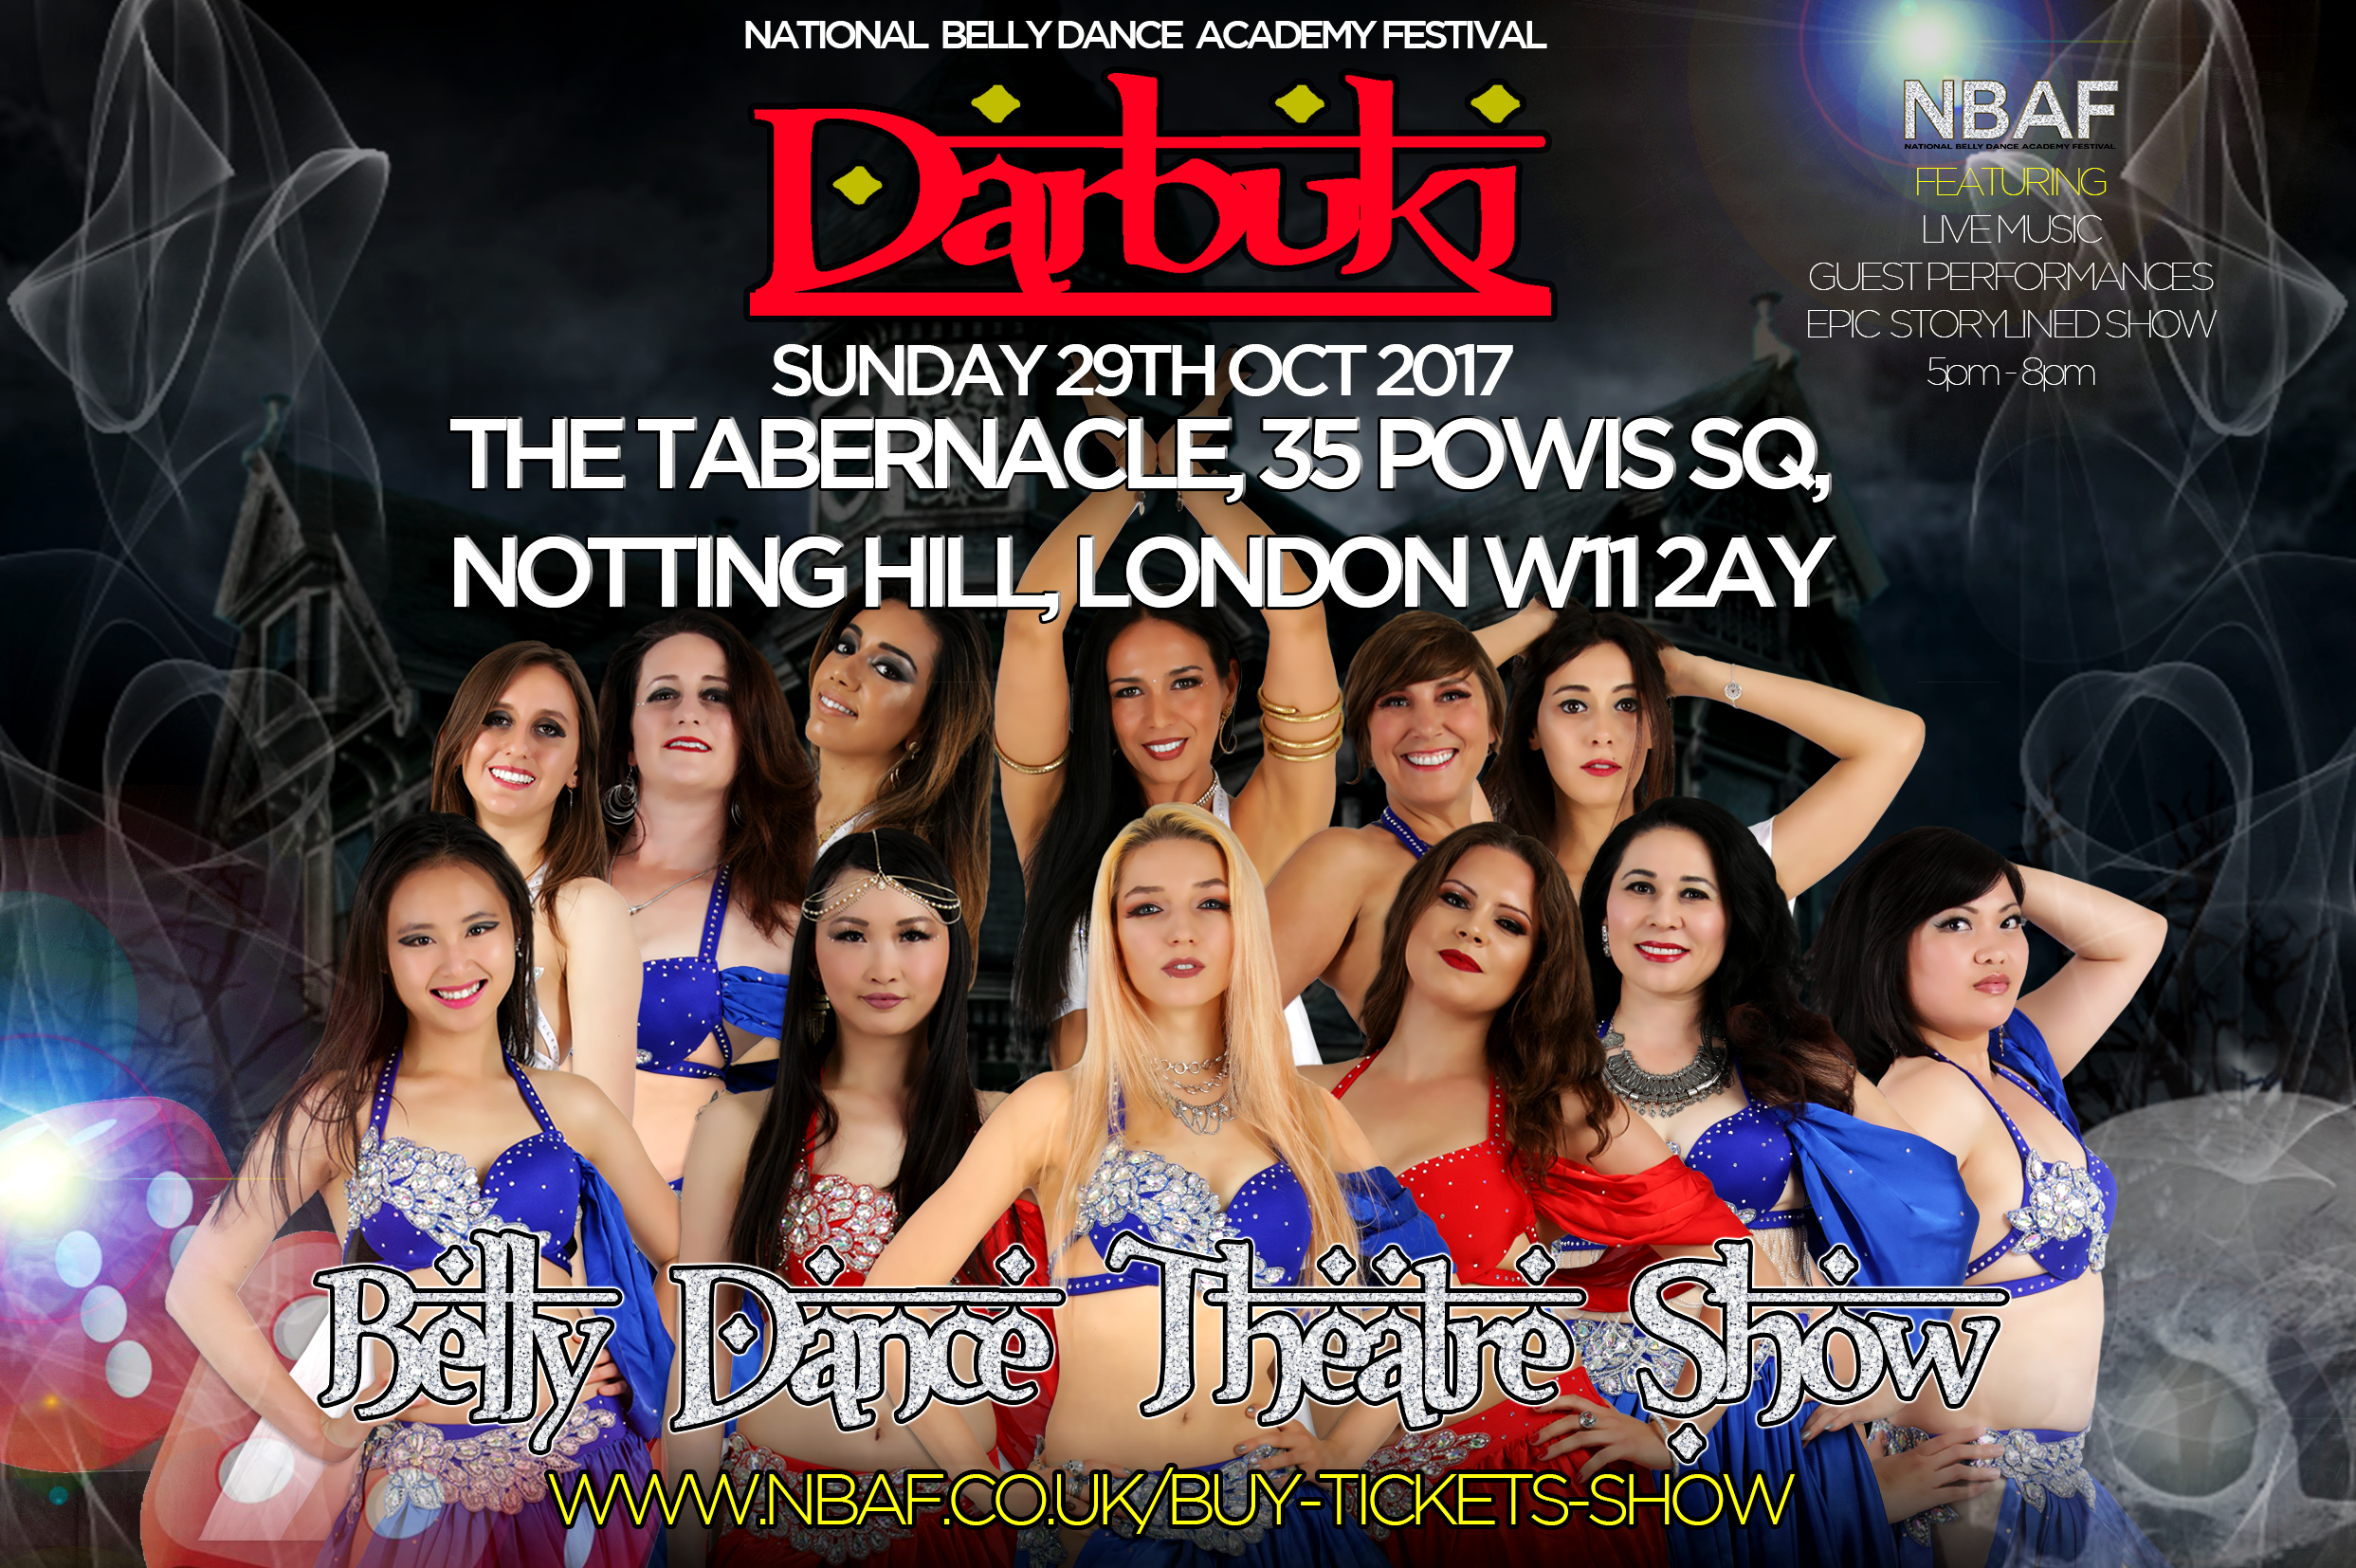 Darbuki National Belly Dance Academy Festival NBAF